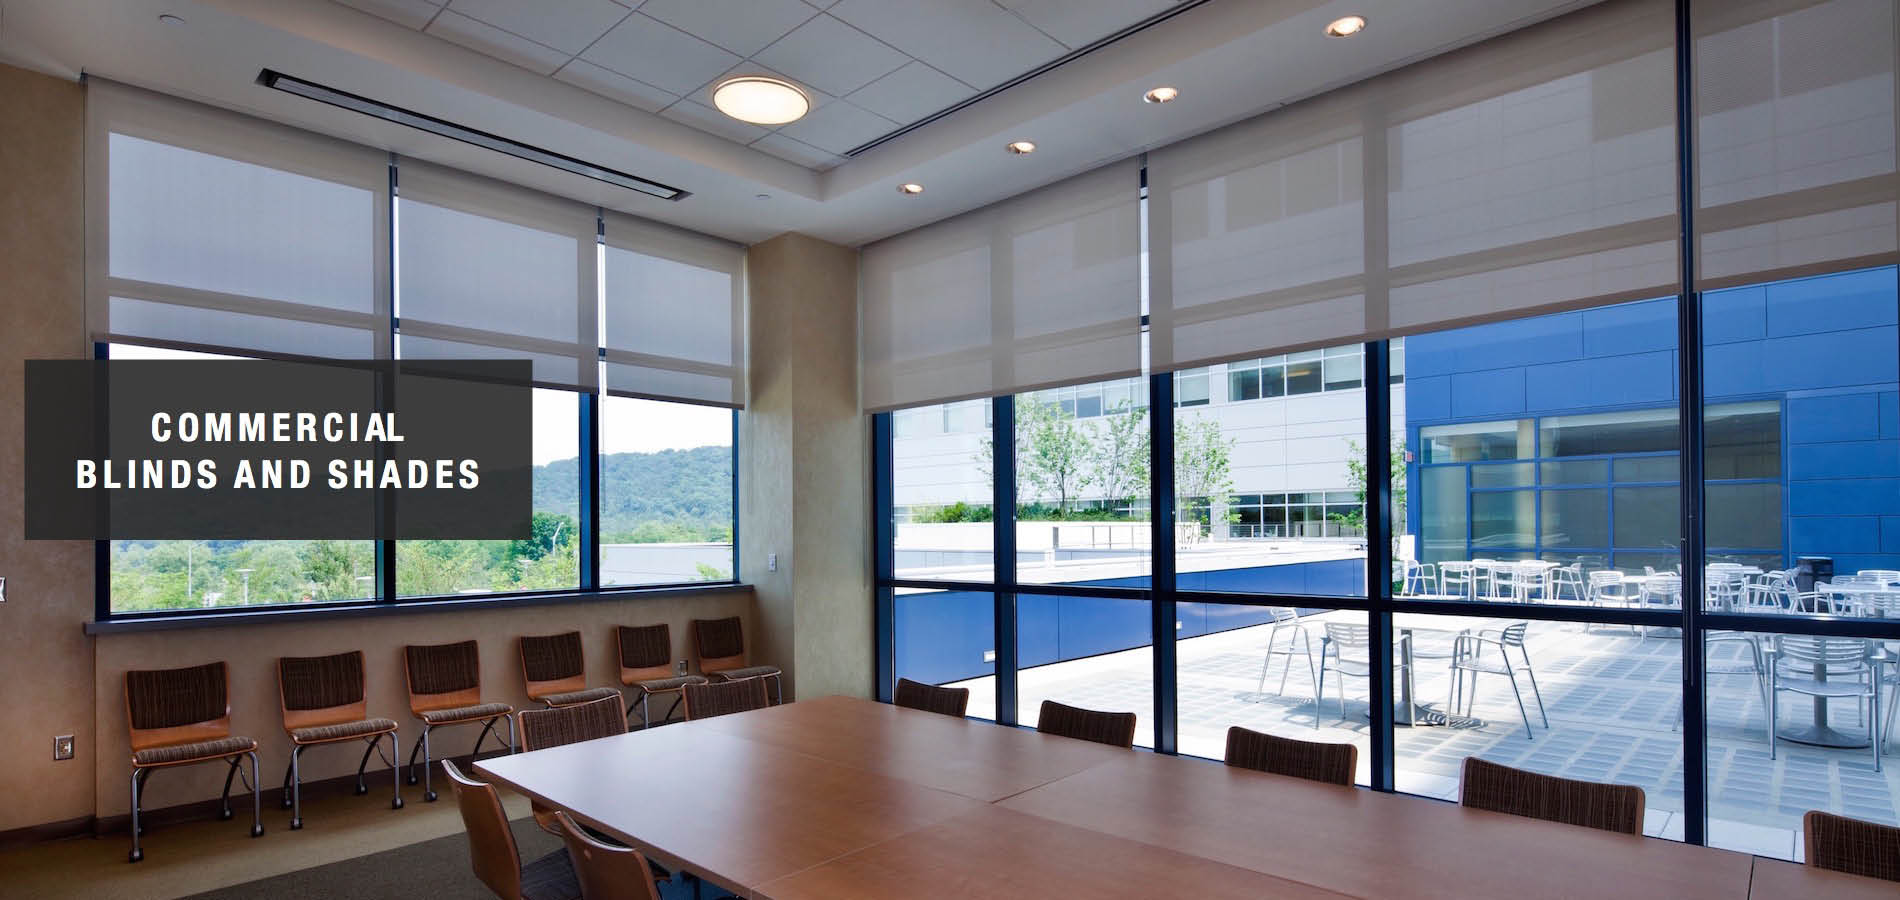 AL'S WINDOW TINTING & CUSTOM WINDOW TREATMENTS COMMERCIAL BLINDS AND SHADES save on shades saves on tinting save on tint